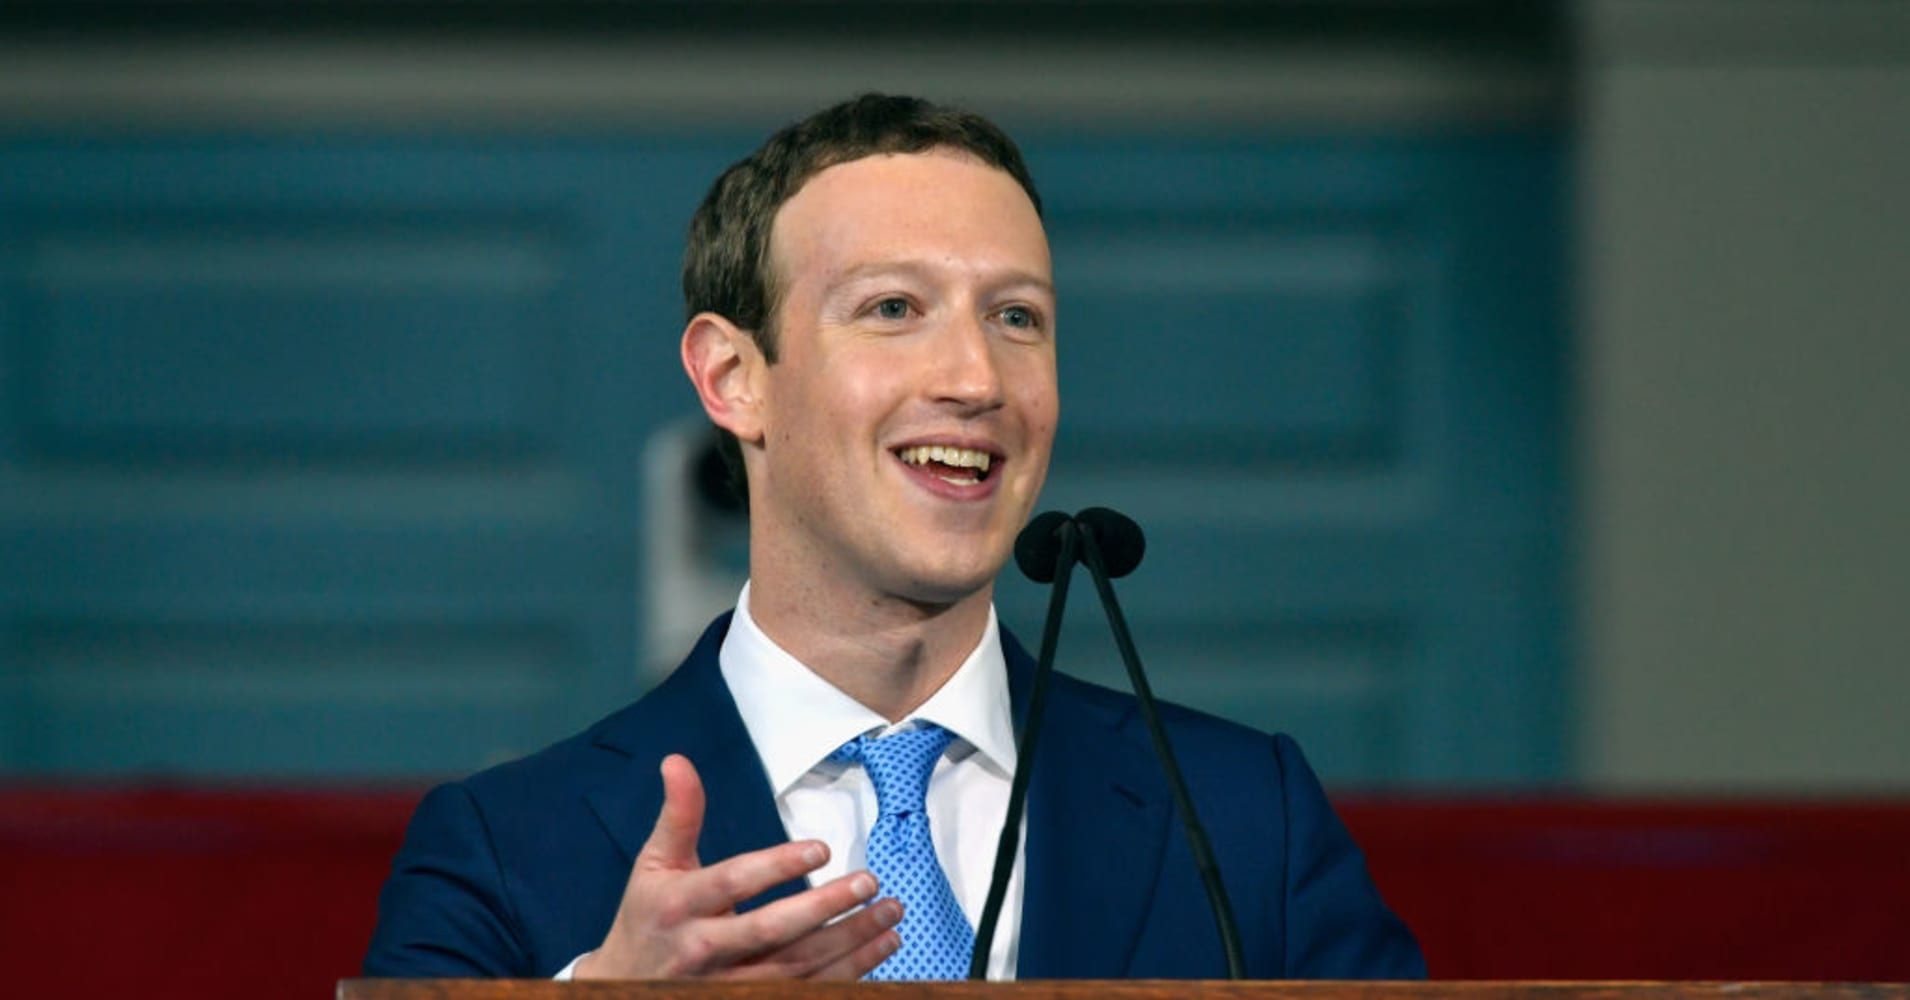 Facebook CEO Mark Zuckerberg finally takes home Harvard degree after 12 years!